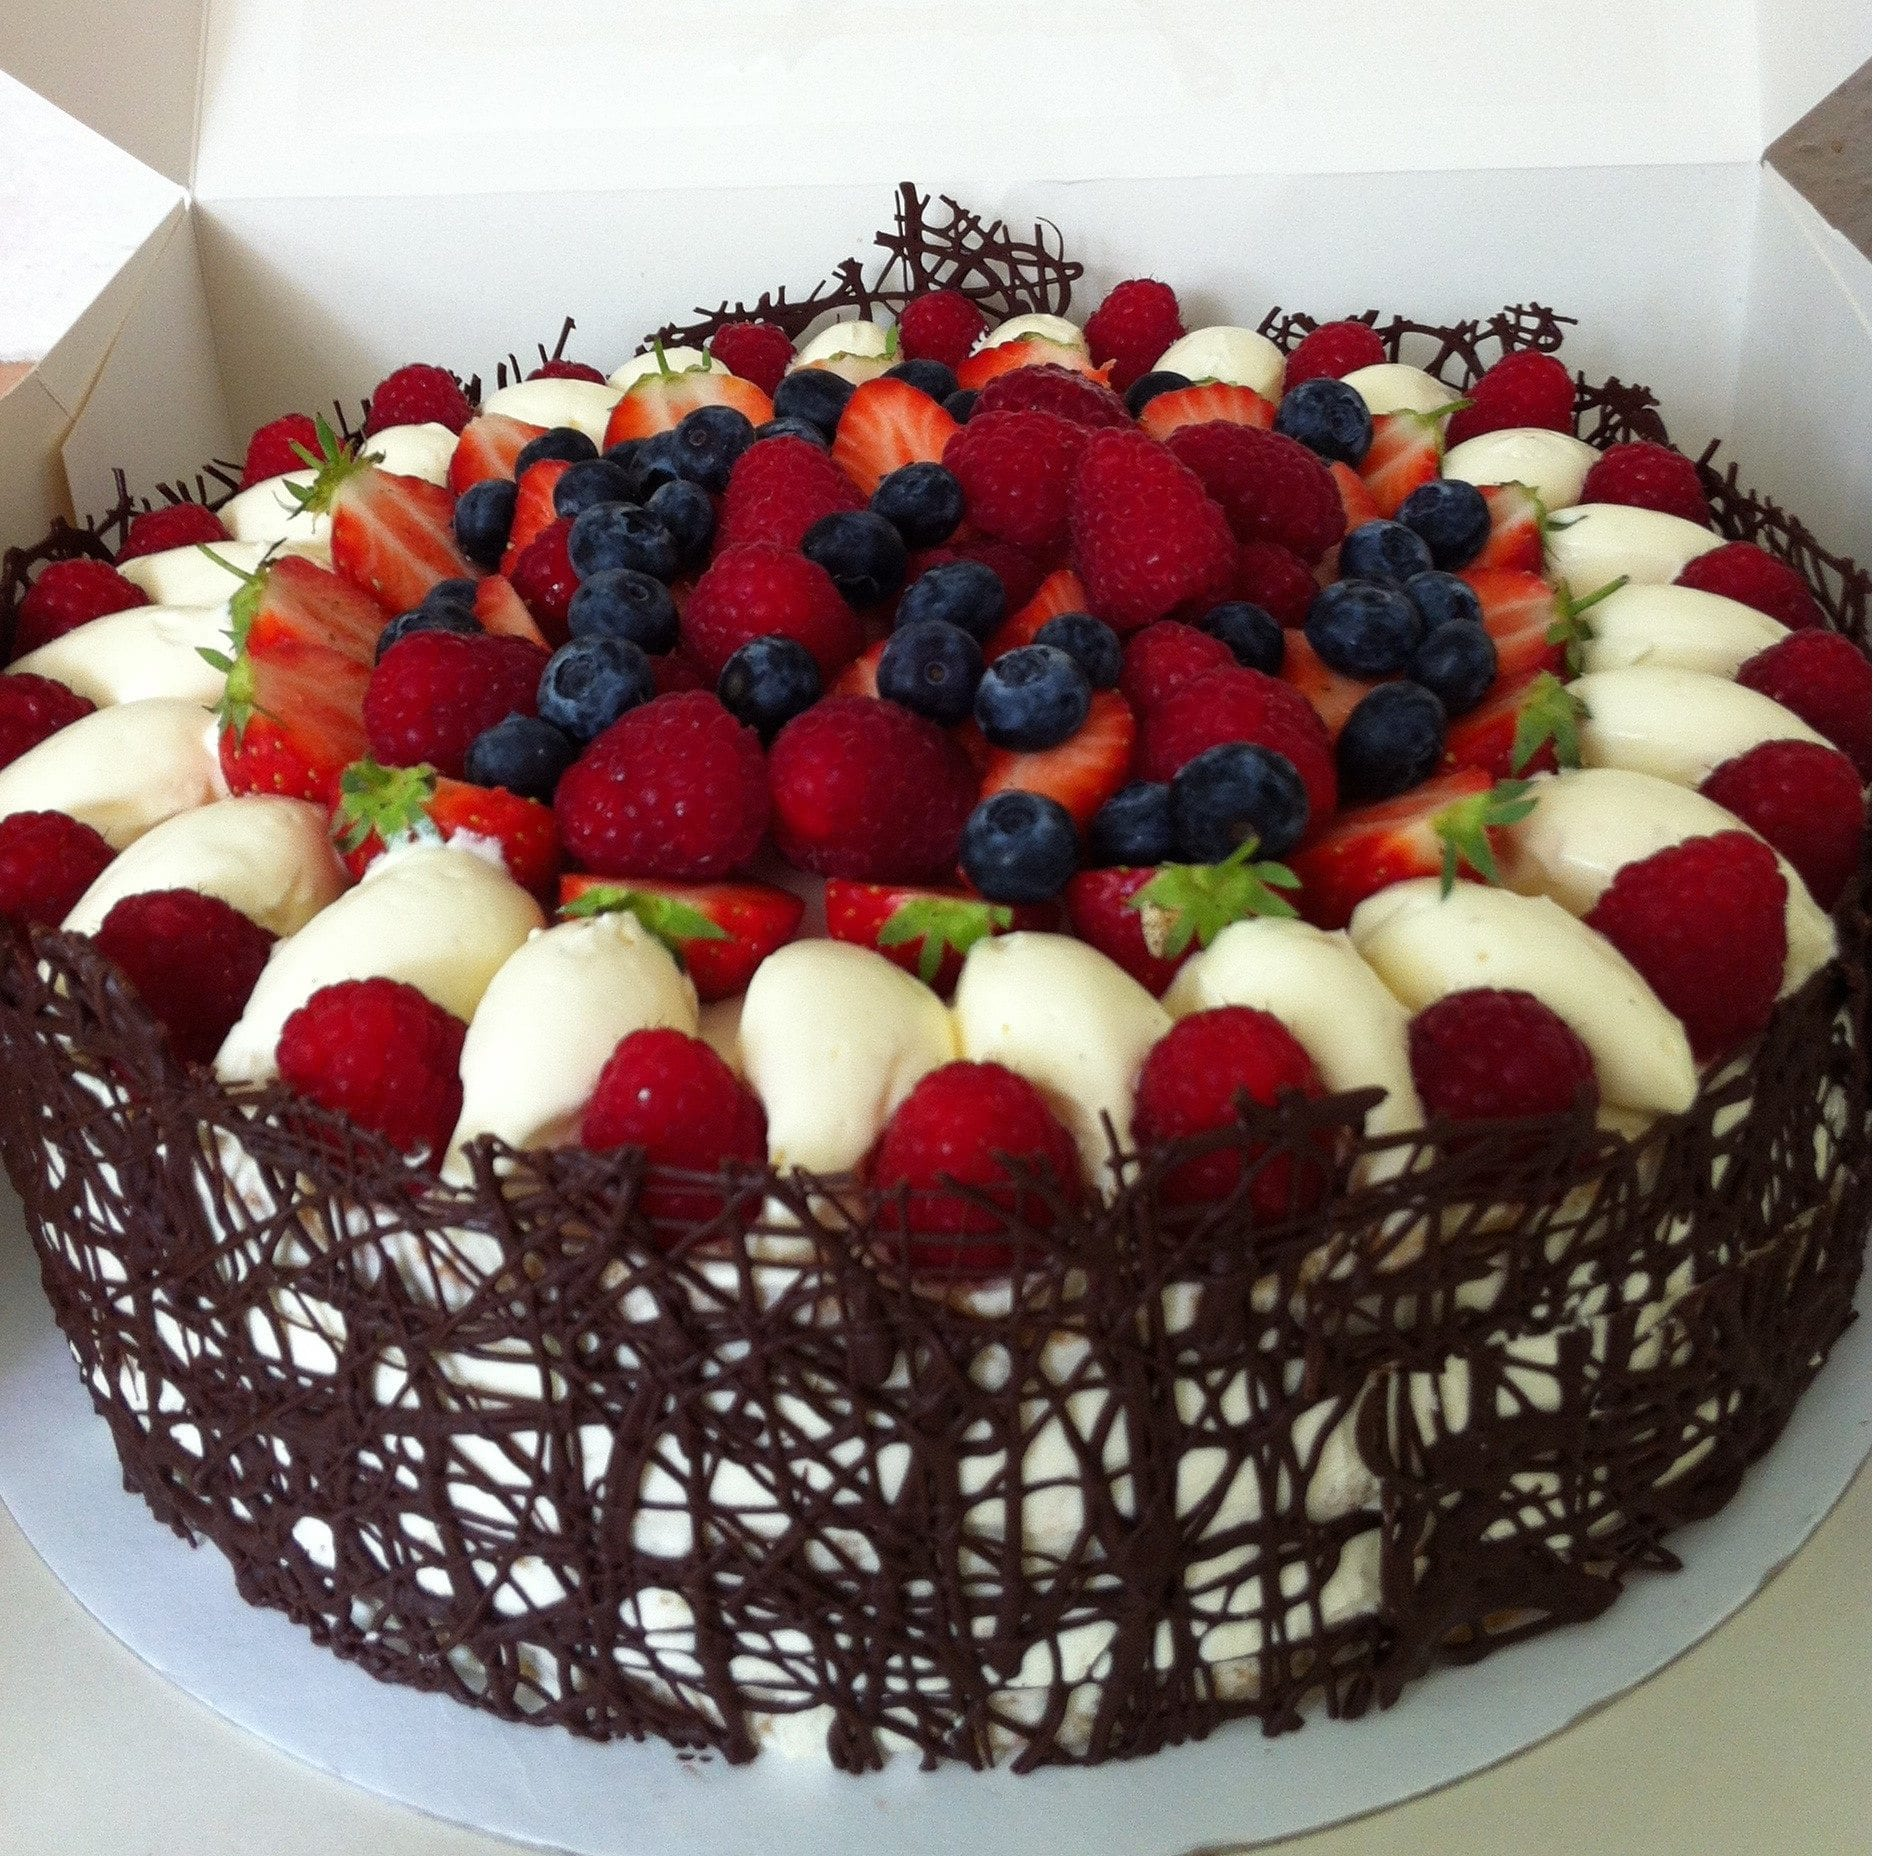 fruits food and cake - photo #8